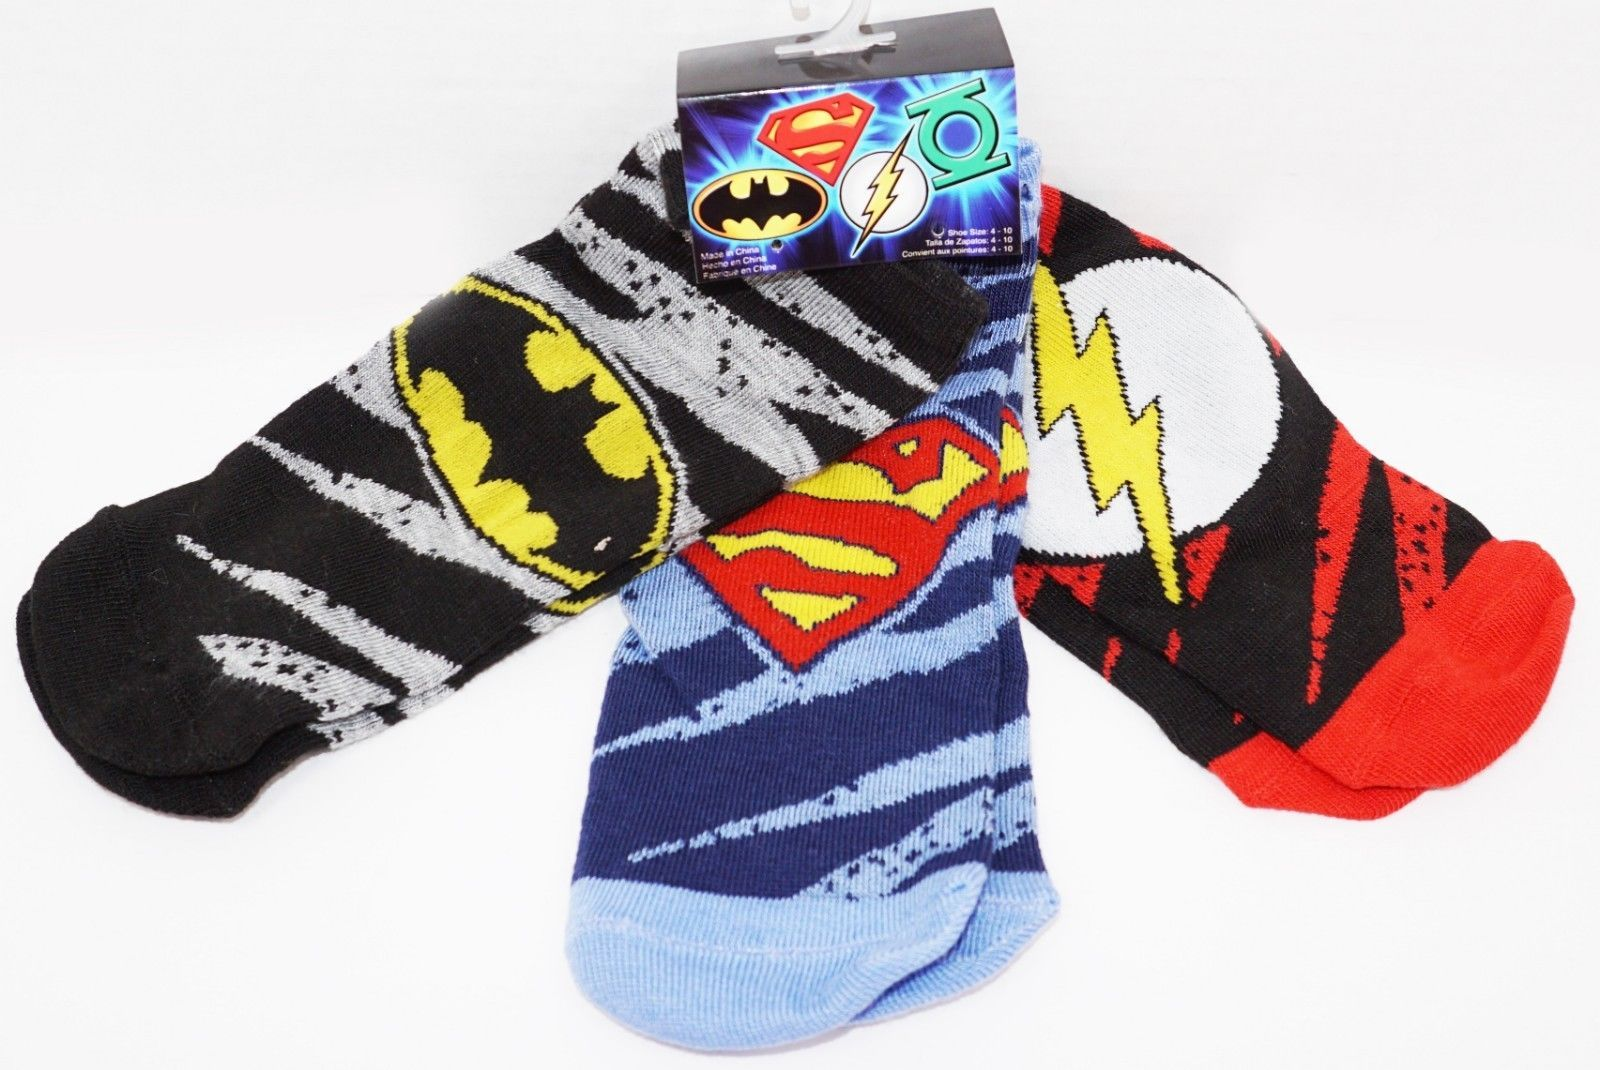 Primary image for DC COMICS 3 PACK 1 SET - LOW CUT SOCKS ADULT SHOE SZ 4-10 HYP 2017 STYLE #1